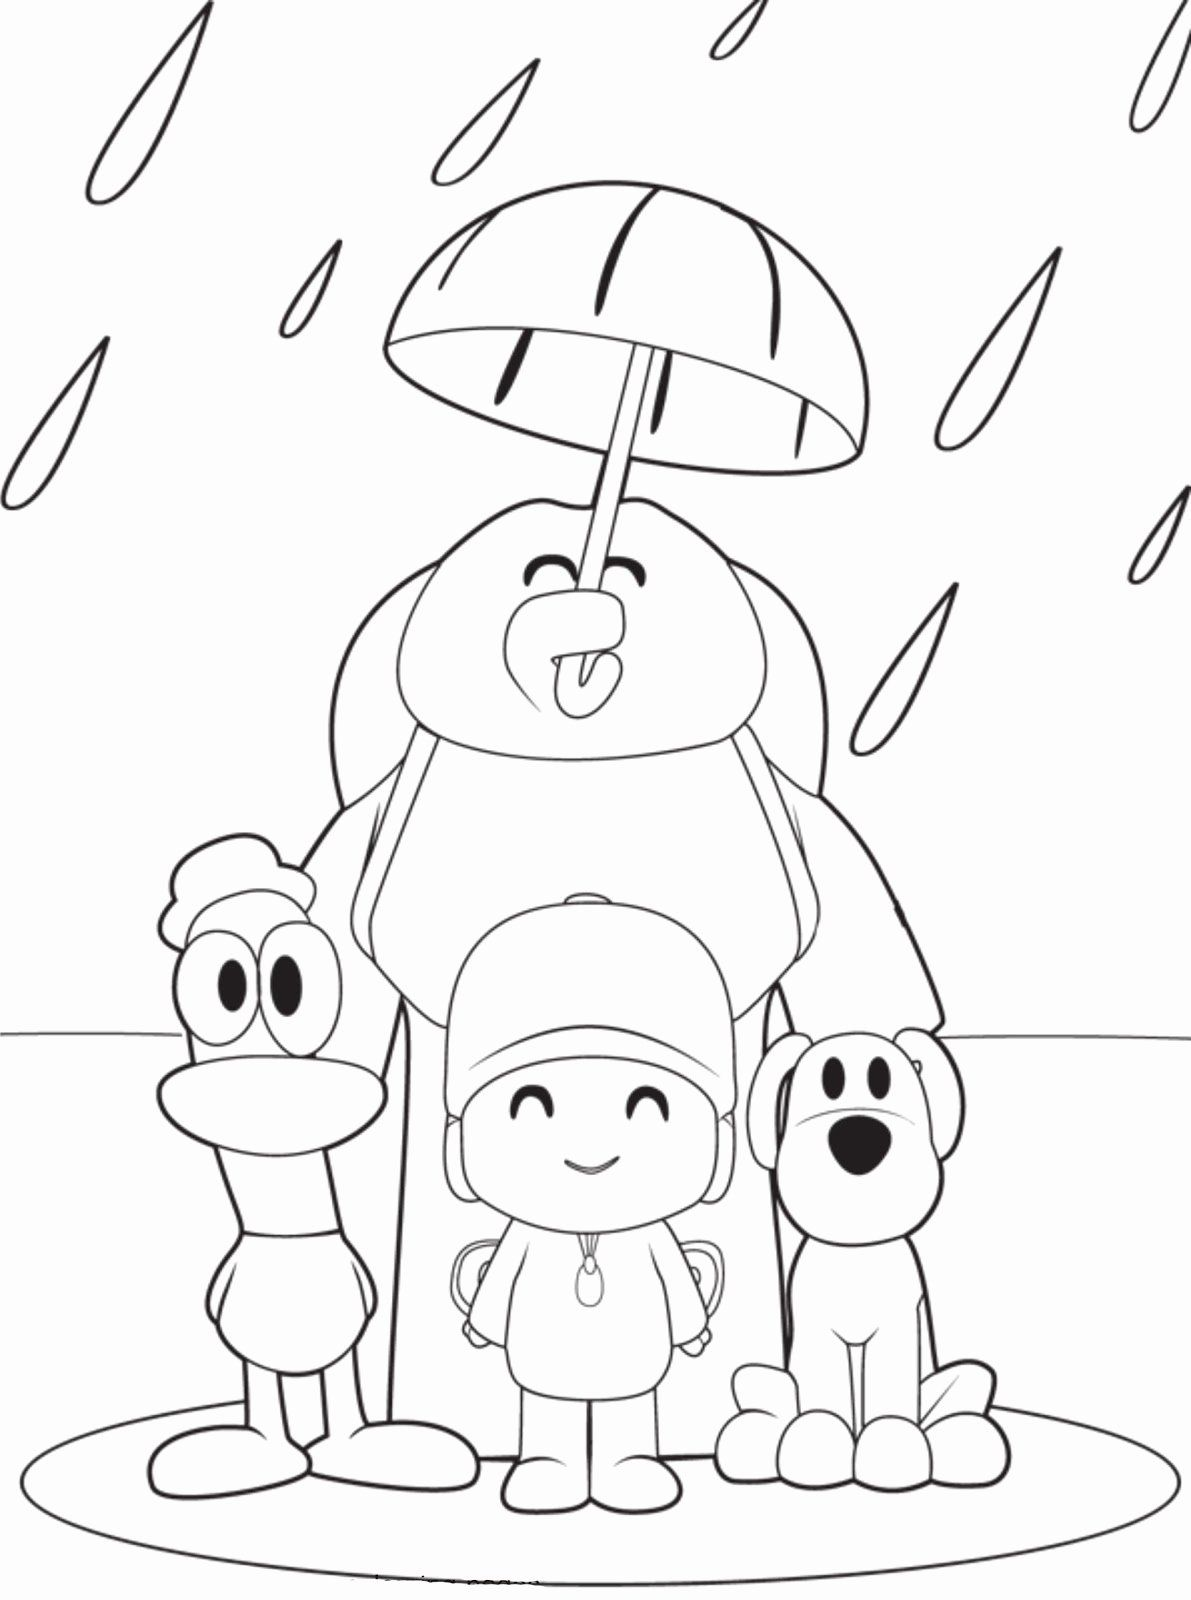 27 Cool Coloring Books In 2020 Umbrella Coloring Page Cartoon Coloring Pages Barbie Coloring Pages